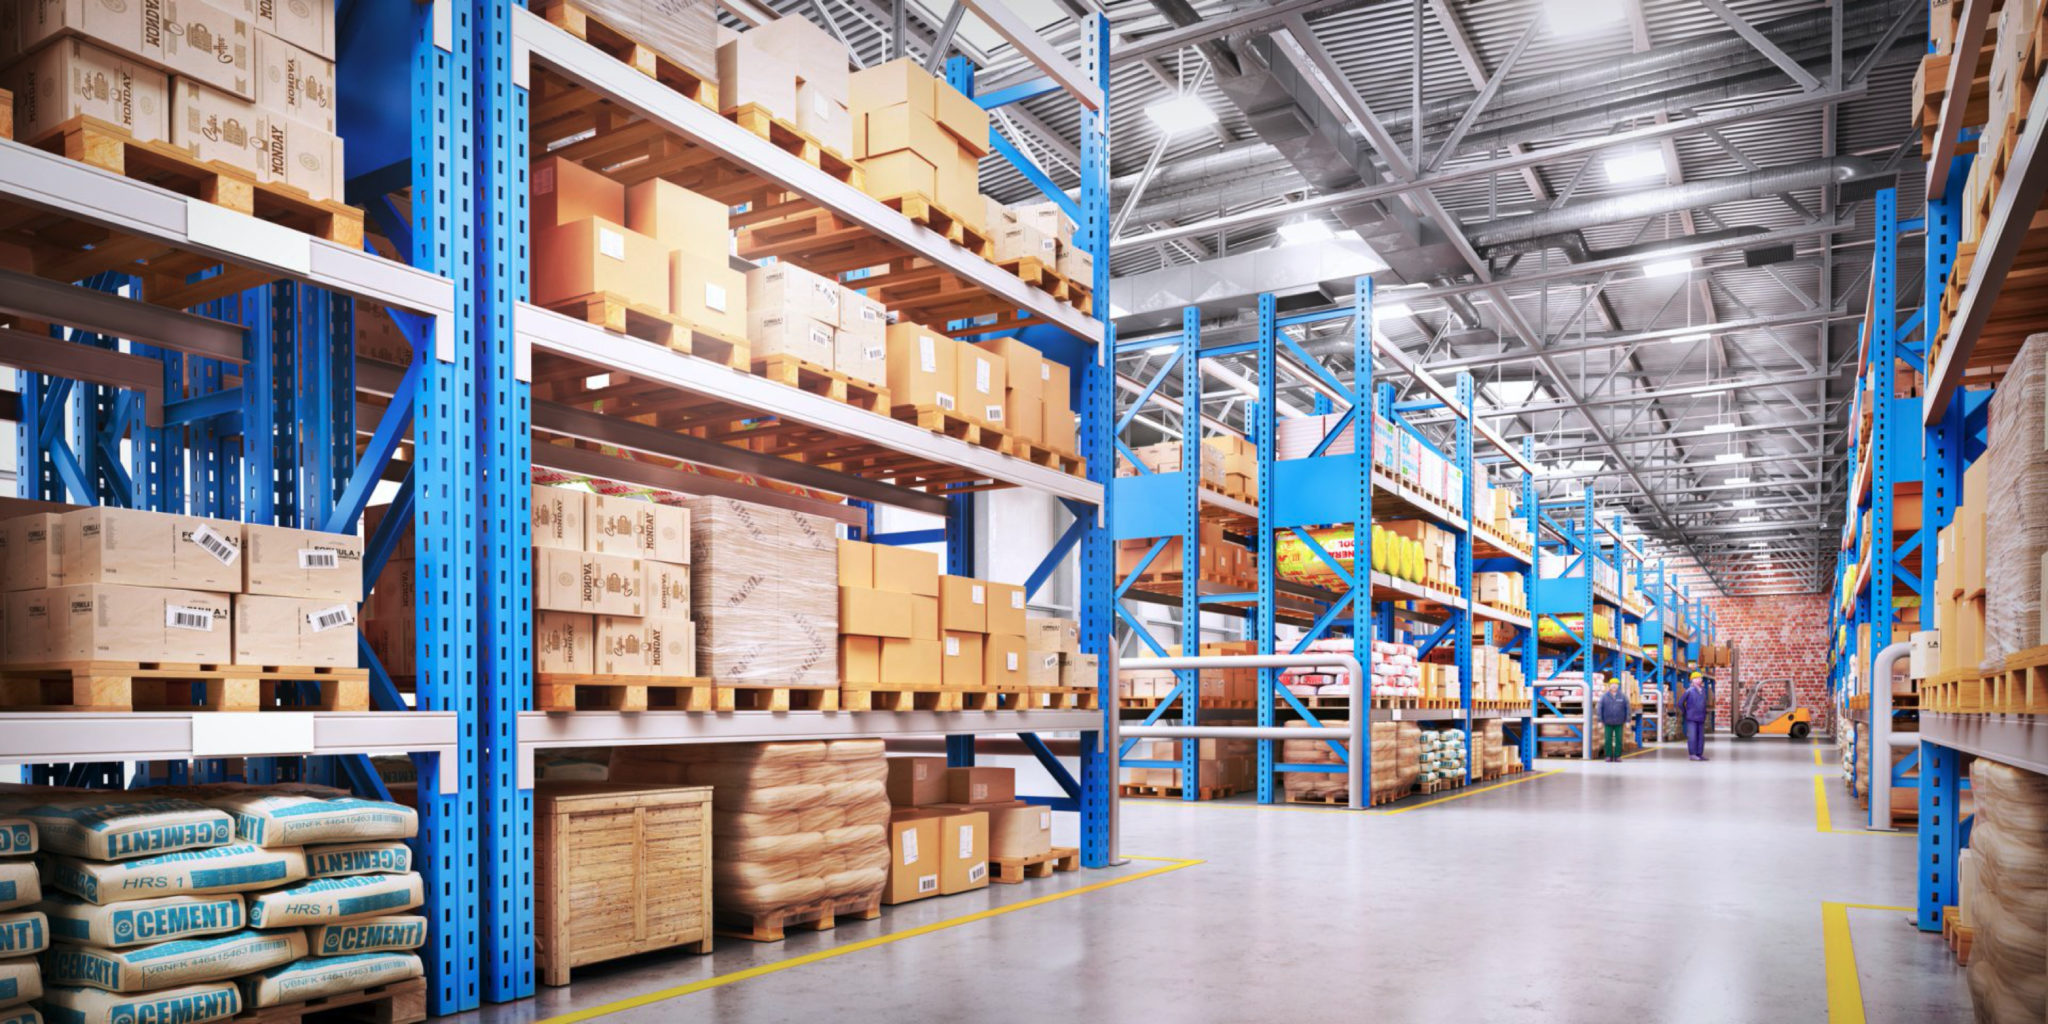 Inside view of distribution center warehouse